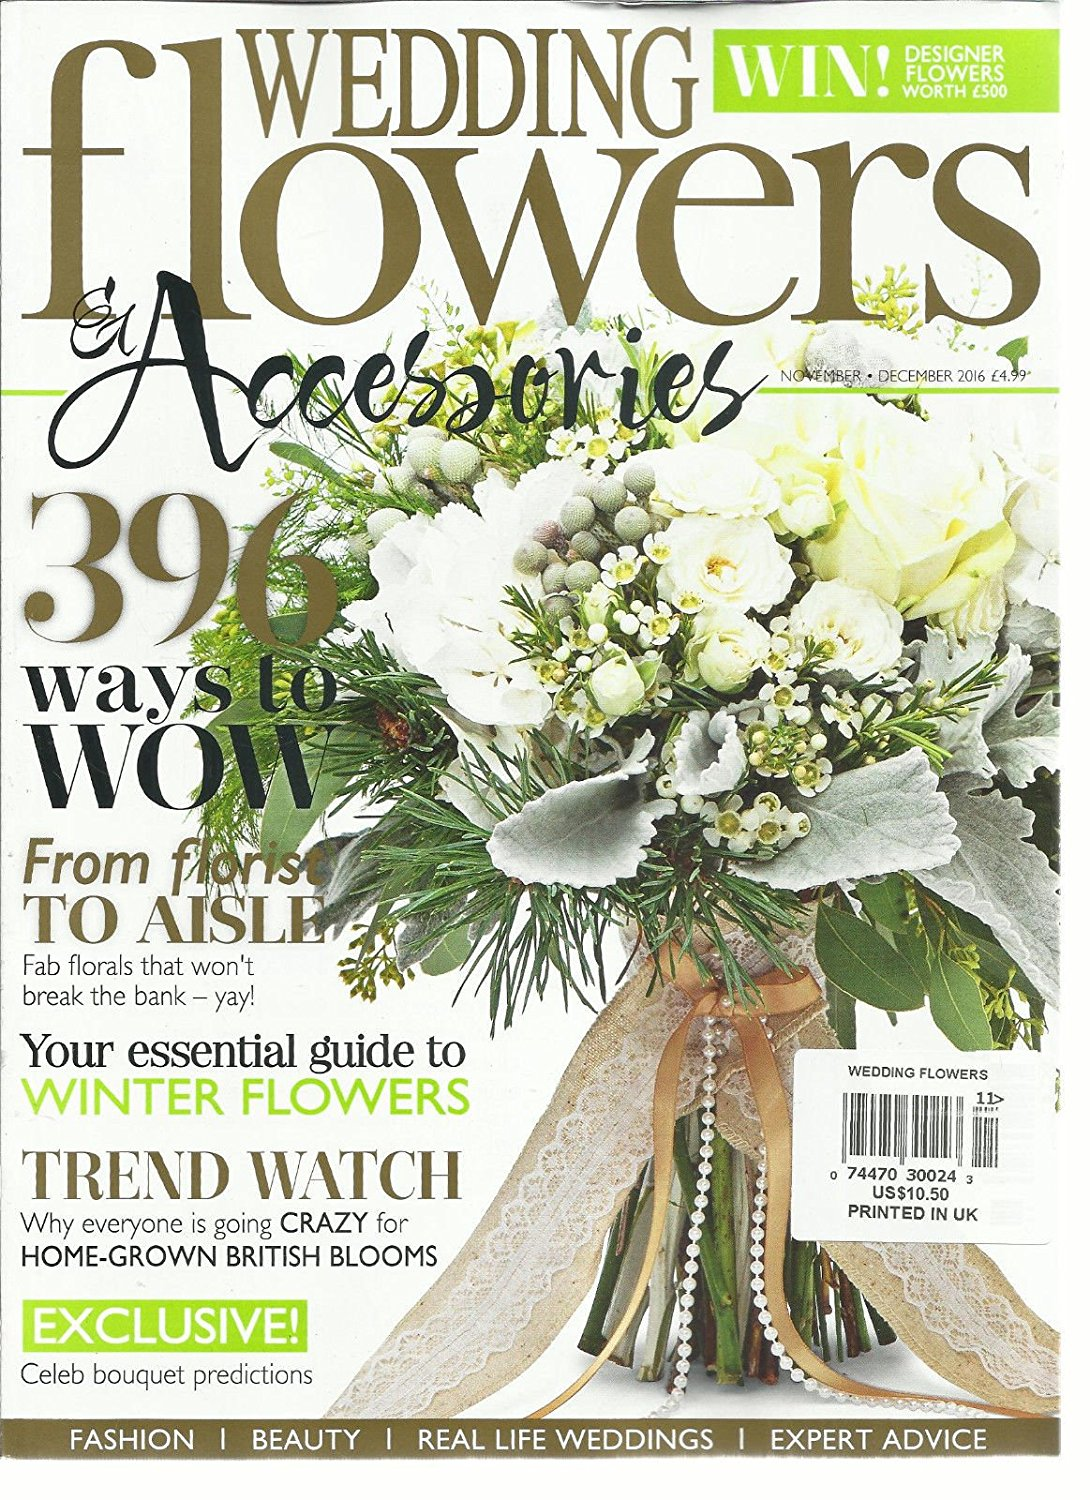 WEDDING FLOWERS & ACCESSORIES, 396 WAYS TO WOW NOVEMBER / DECEMBER, 2016